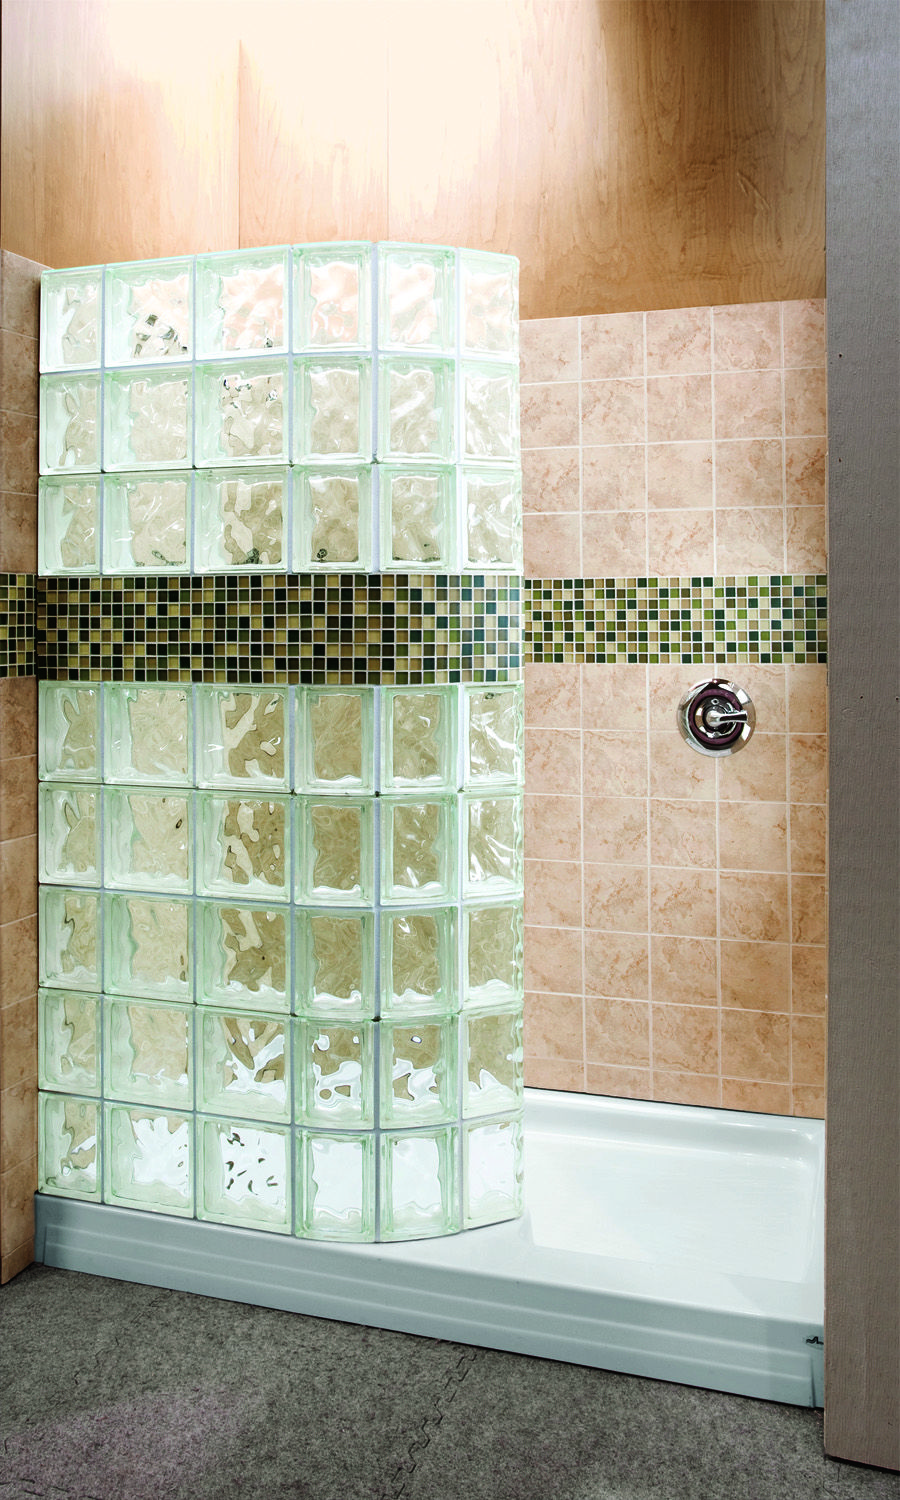 acrylic panels for bathroom walls%0A Eliminating a Shower Door with a Low Maintenance Glass Block Walk in Shower  Kit in Lincoln Delaware   Shower wall panels  Shower kits and DIY interior